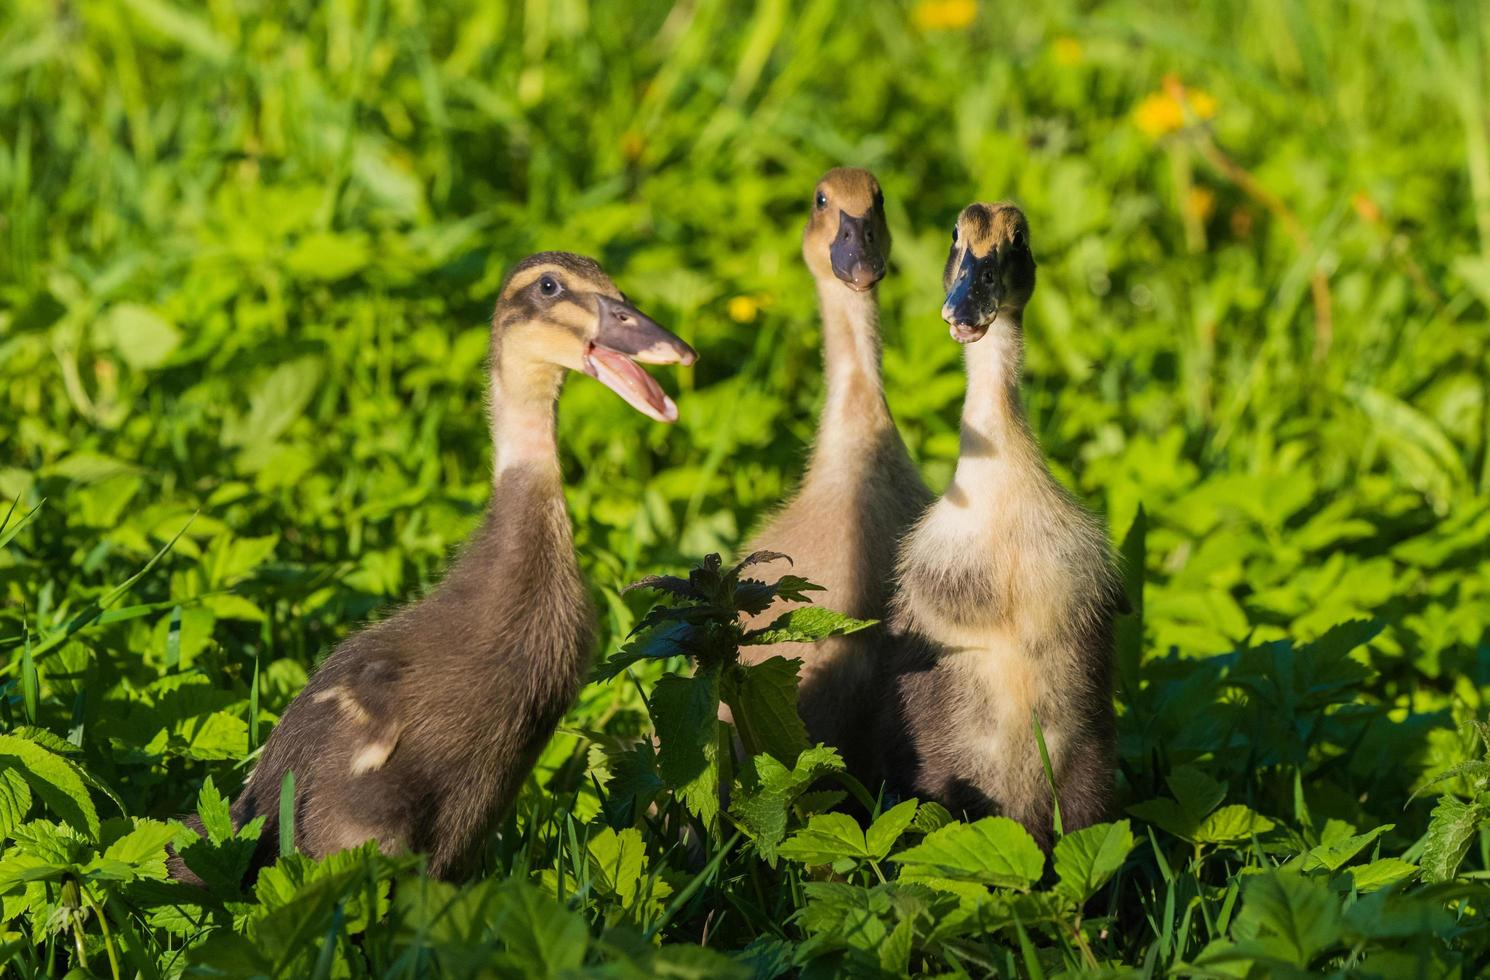 Three ducklings in grass photo